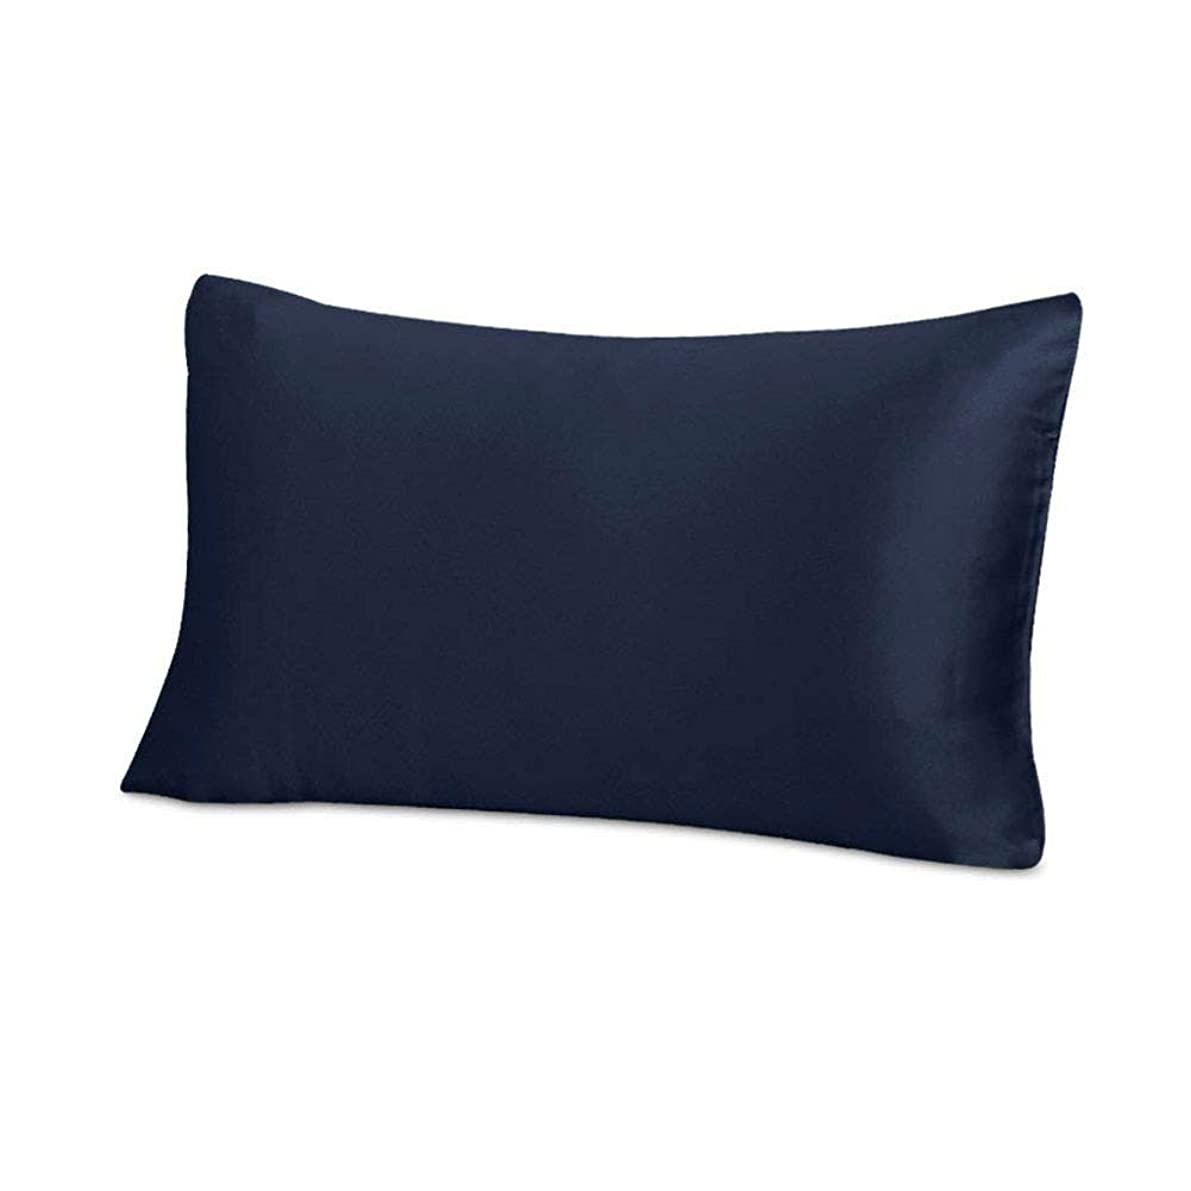 THXSILK Silk Pillowcase for Hair and Skin-25 Momme Mulberry Silk Pillow Cover with Hidden Zipper, Pure Silk on Both Sides, Standard Size 20